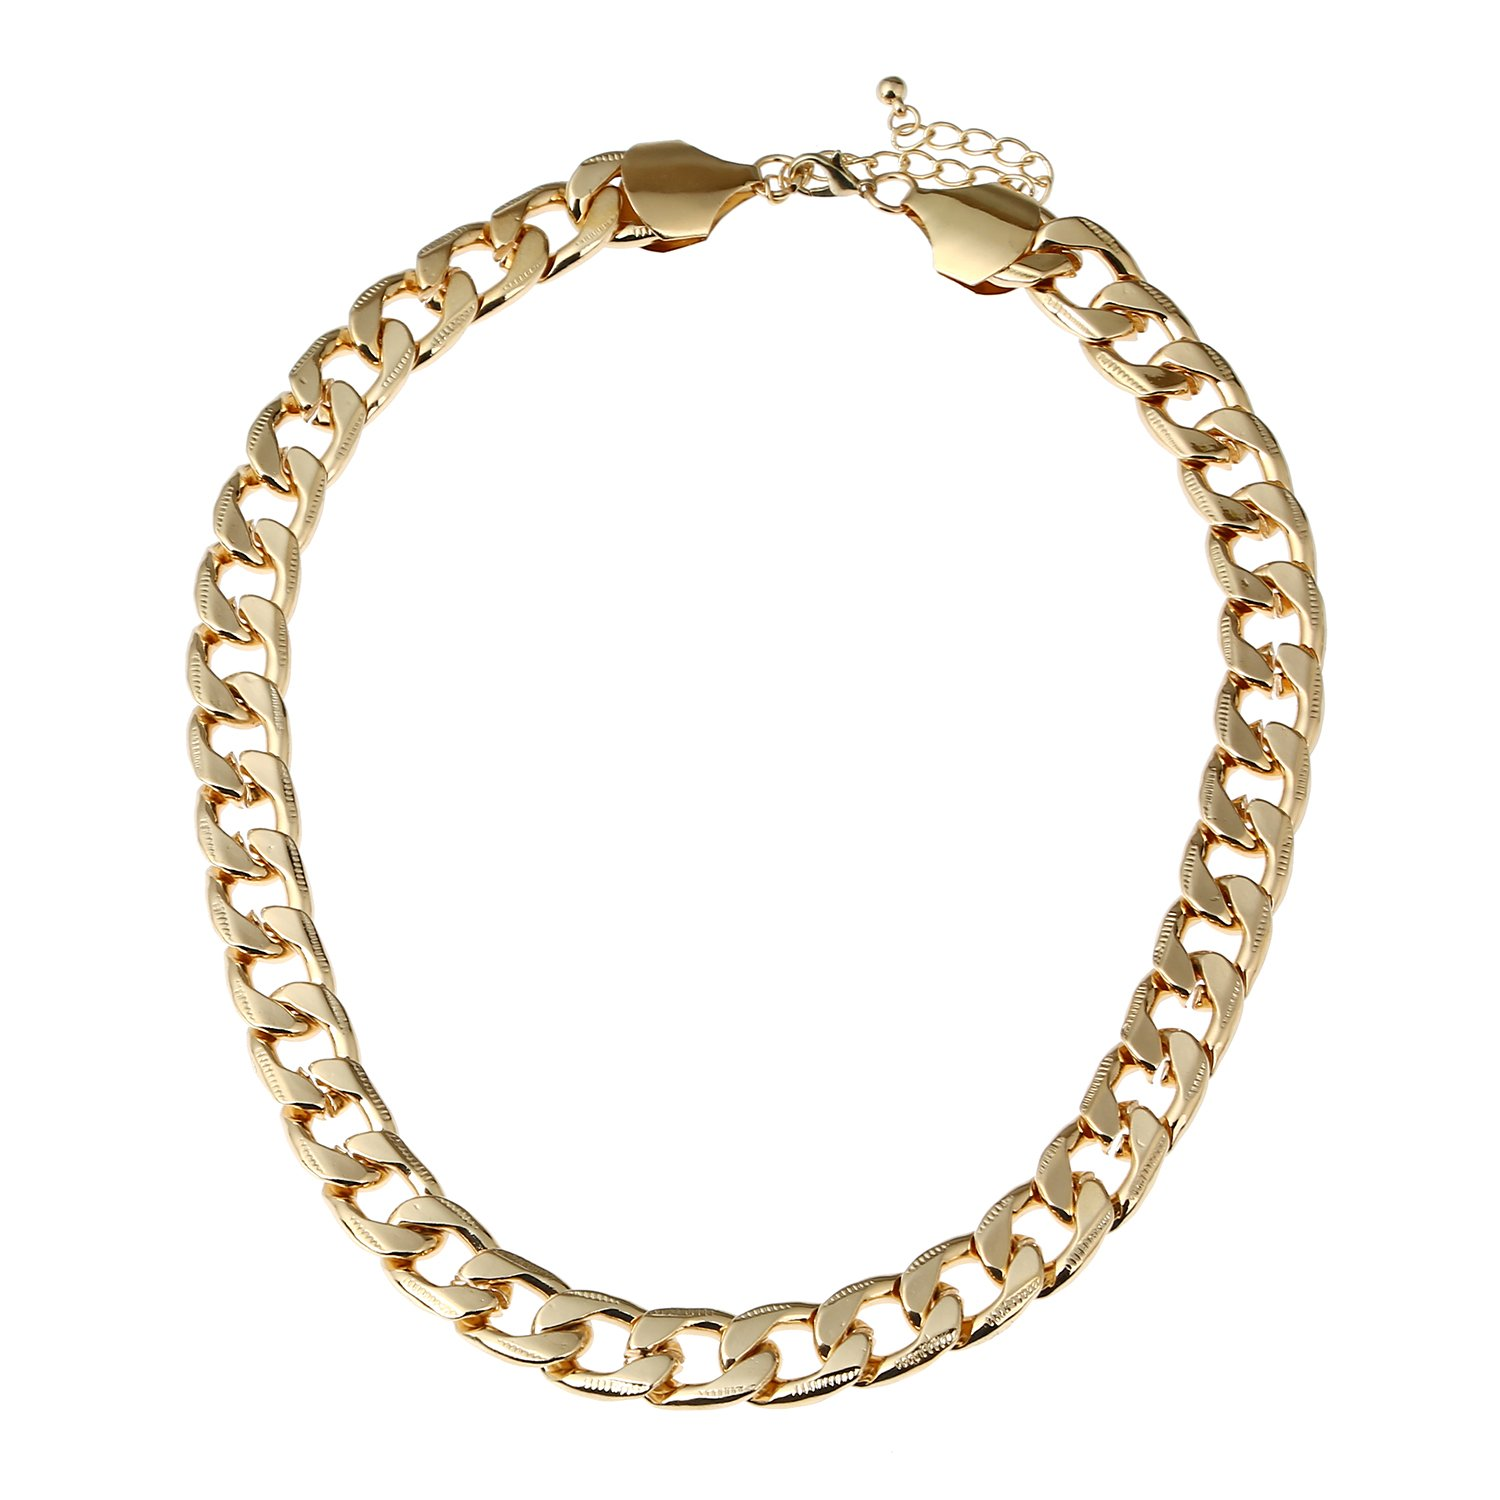 D EXCEED Gift Idea Gold Metal Figaro Cable Chain Choker Necklace Summer Jewelry for Women 18''